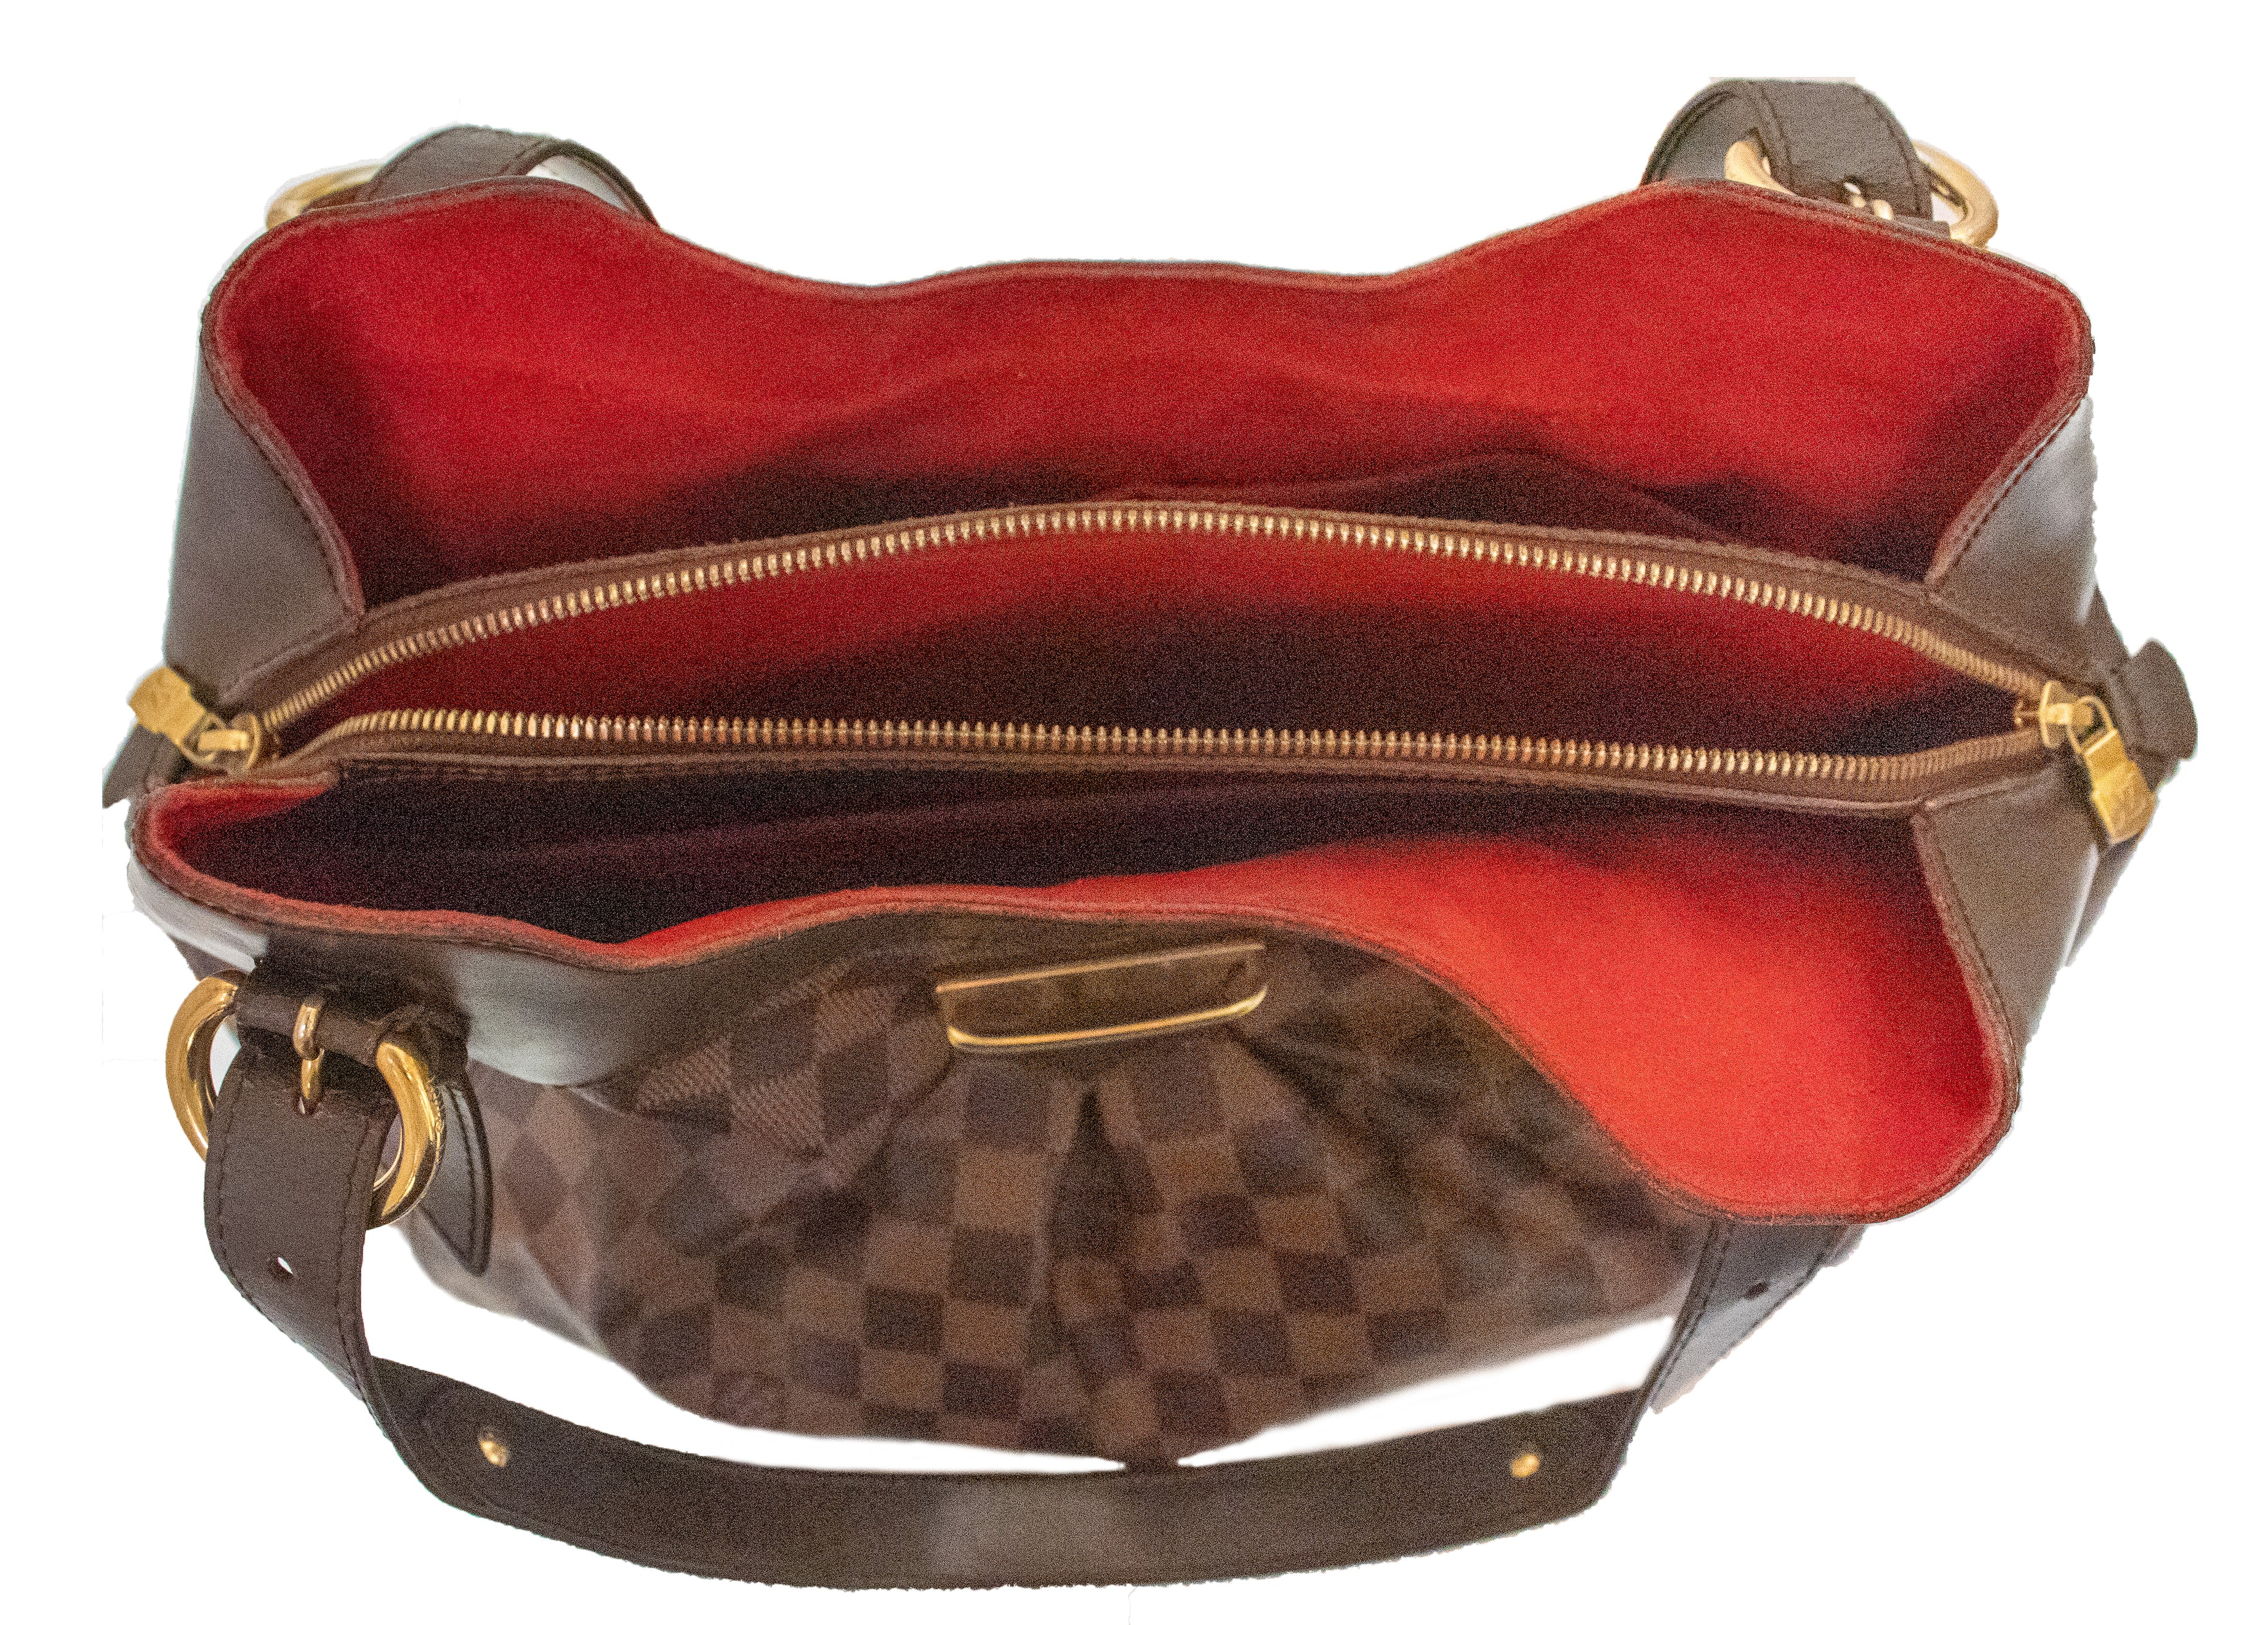 Authentic Louis Vuitton Damier Ebene Sistina GM Shoulder Bag